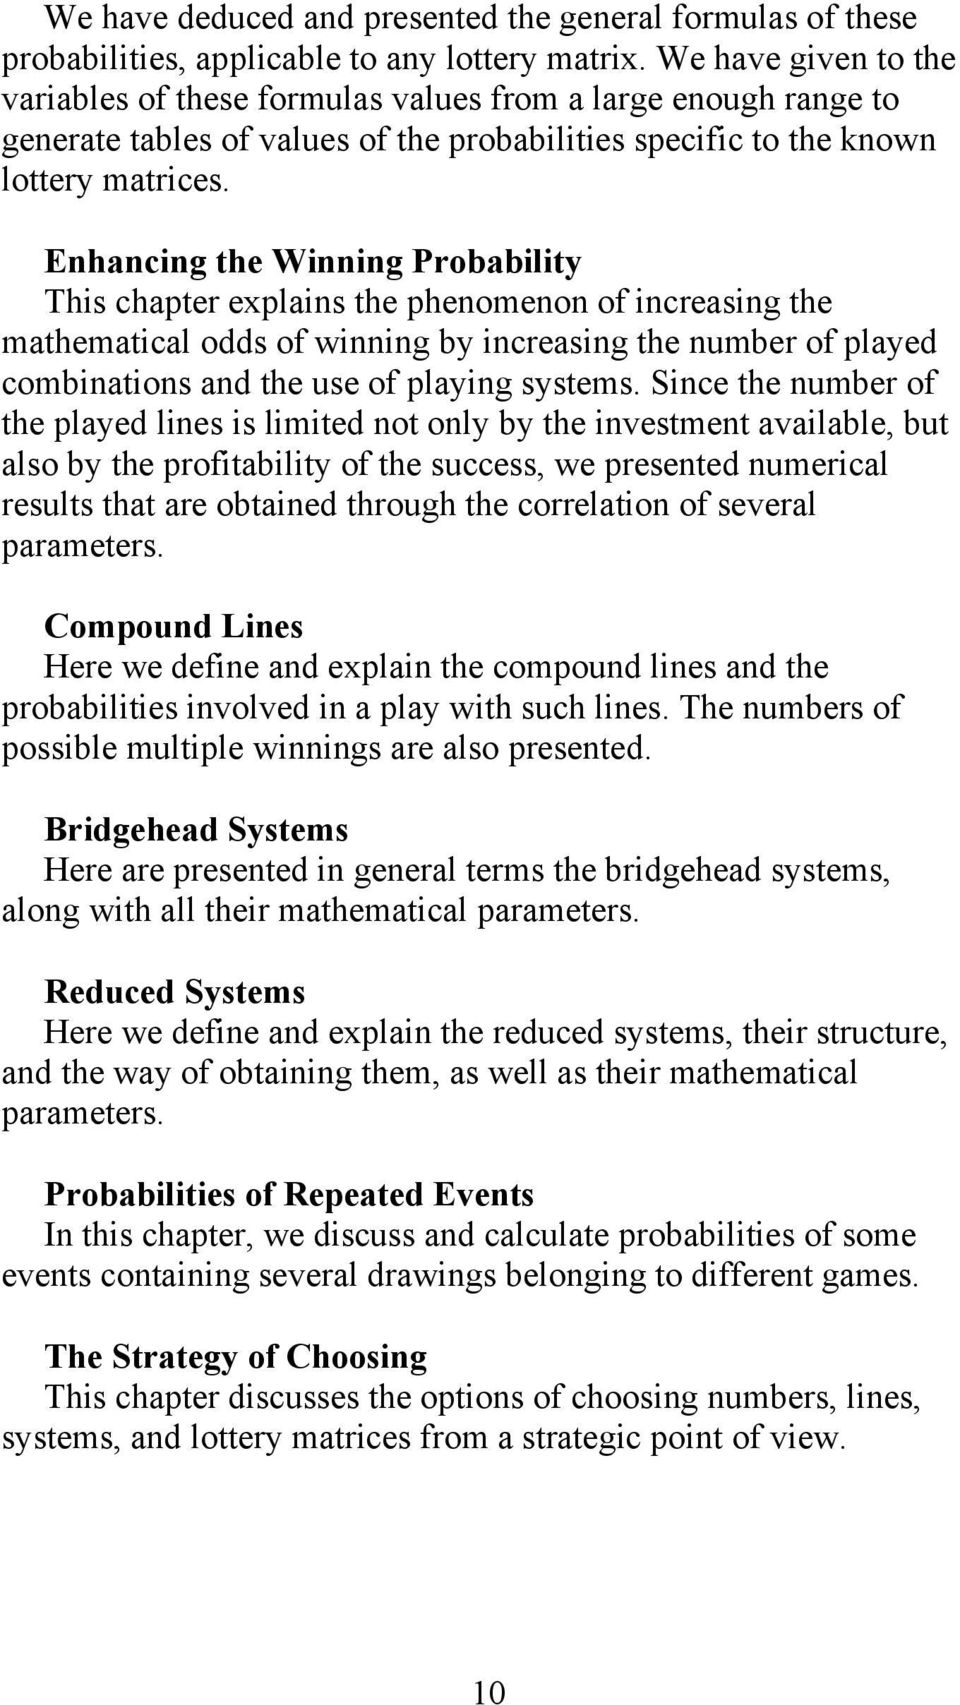 THE MATHEMATICS OF LOTTERY  Odds, Combinations, Systems